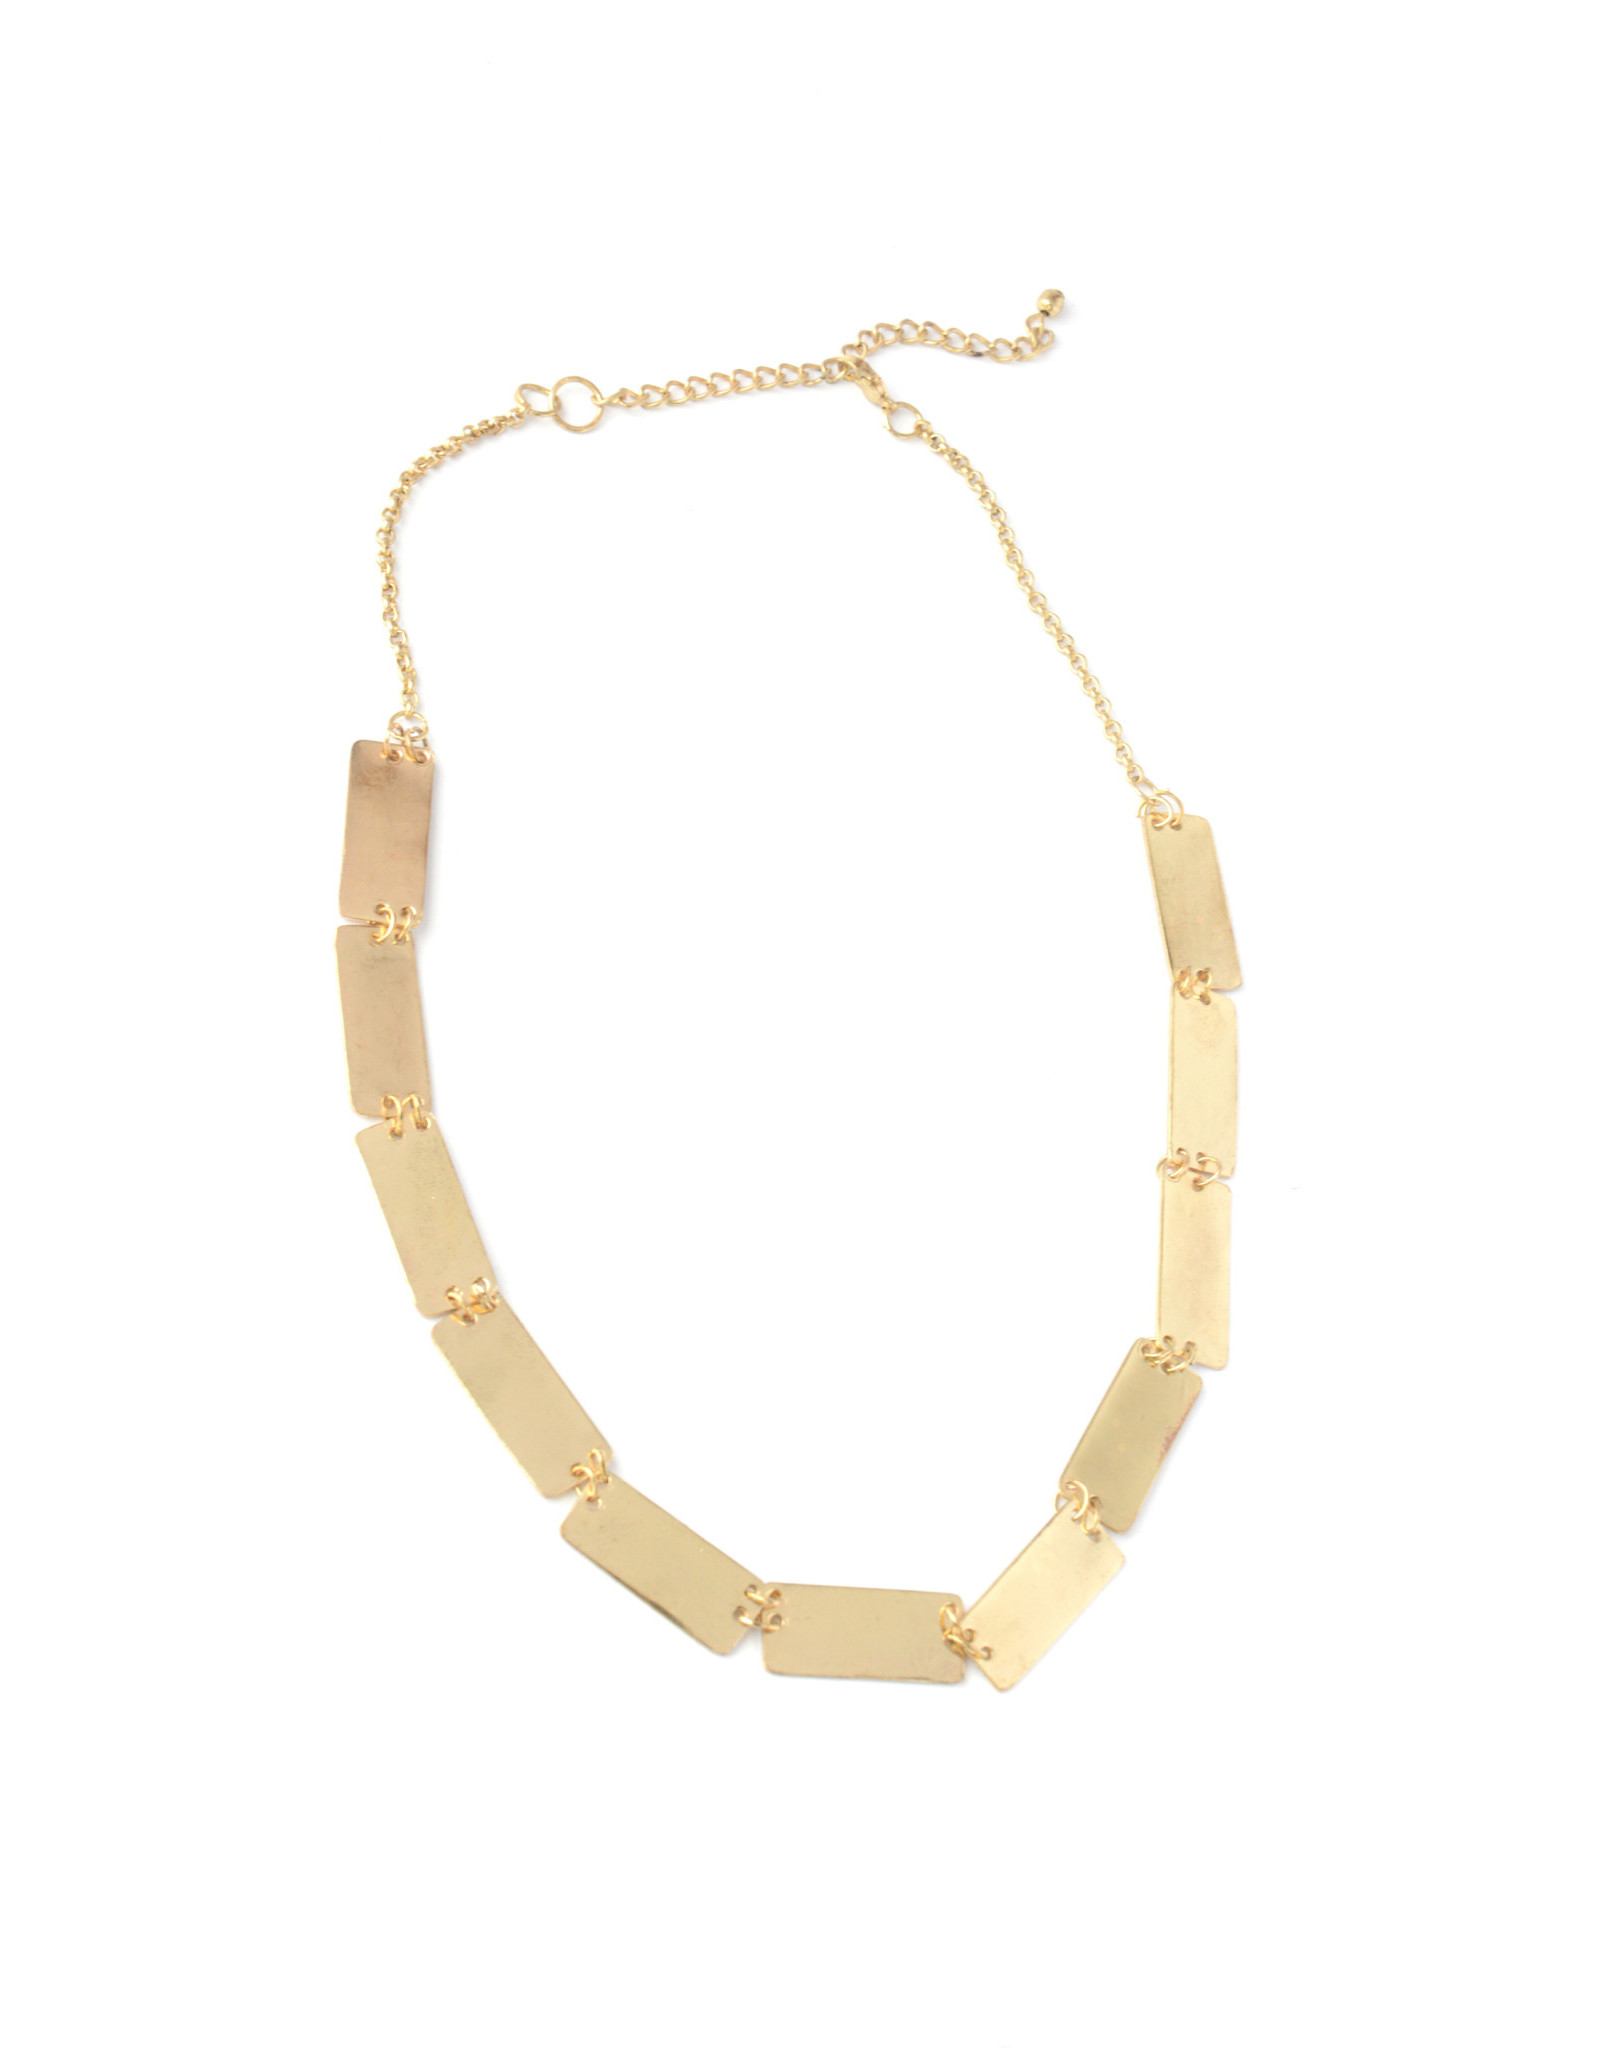 Fair Anita CLEARANCE  Pretty Pathways Brass Necklace, India